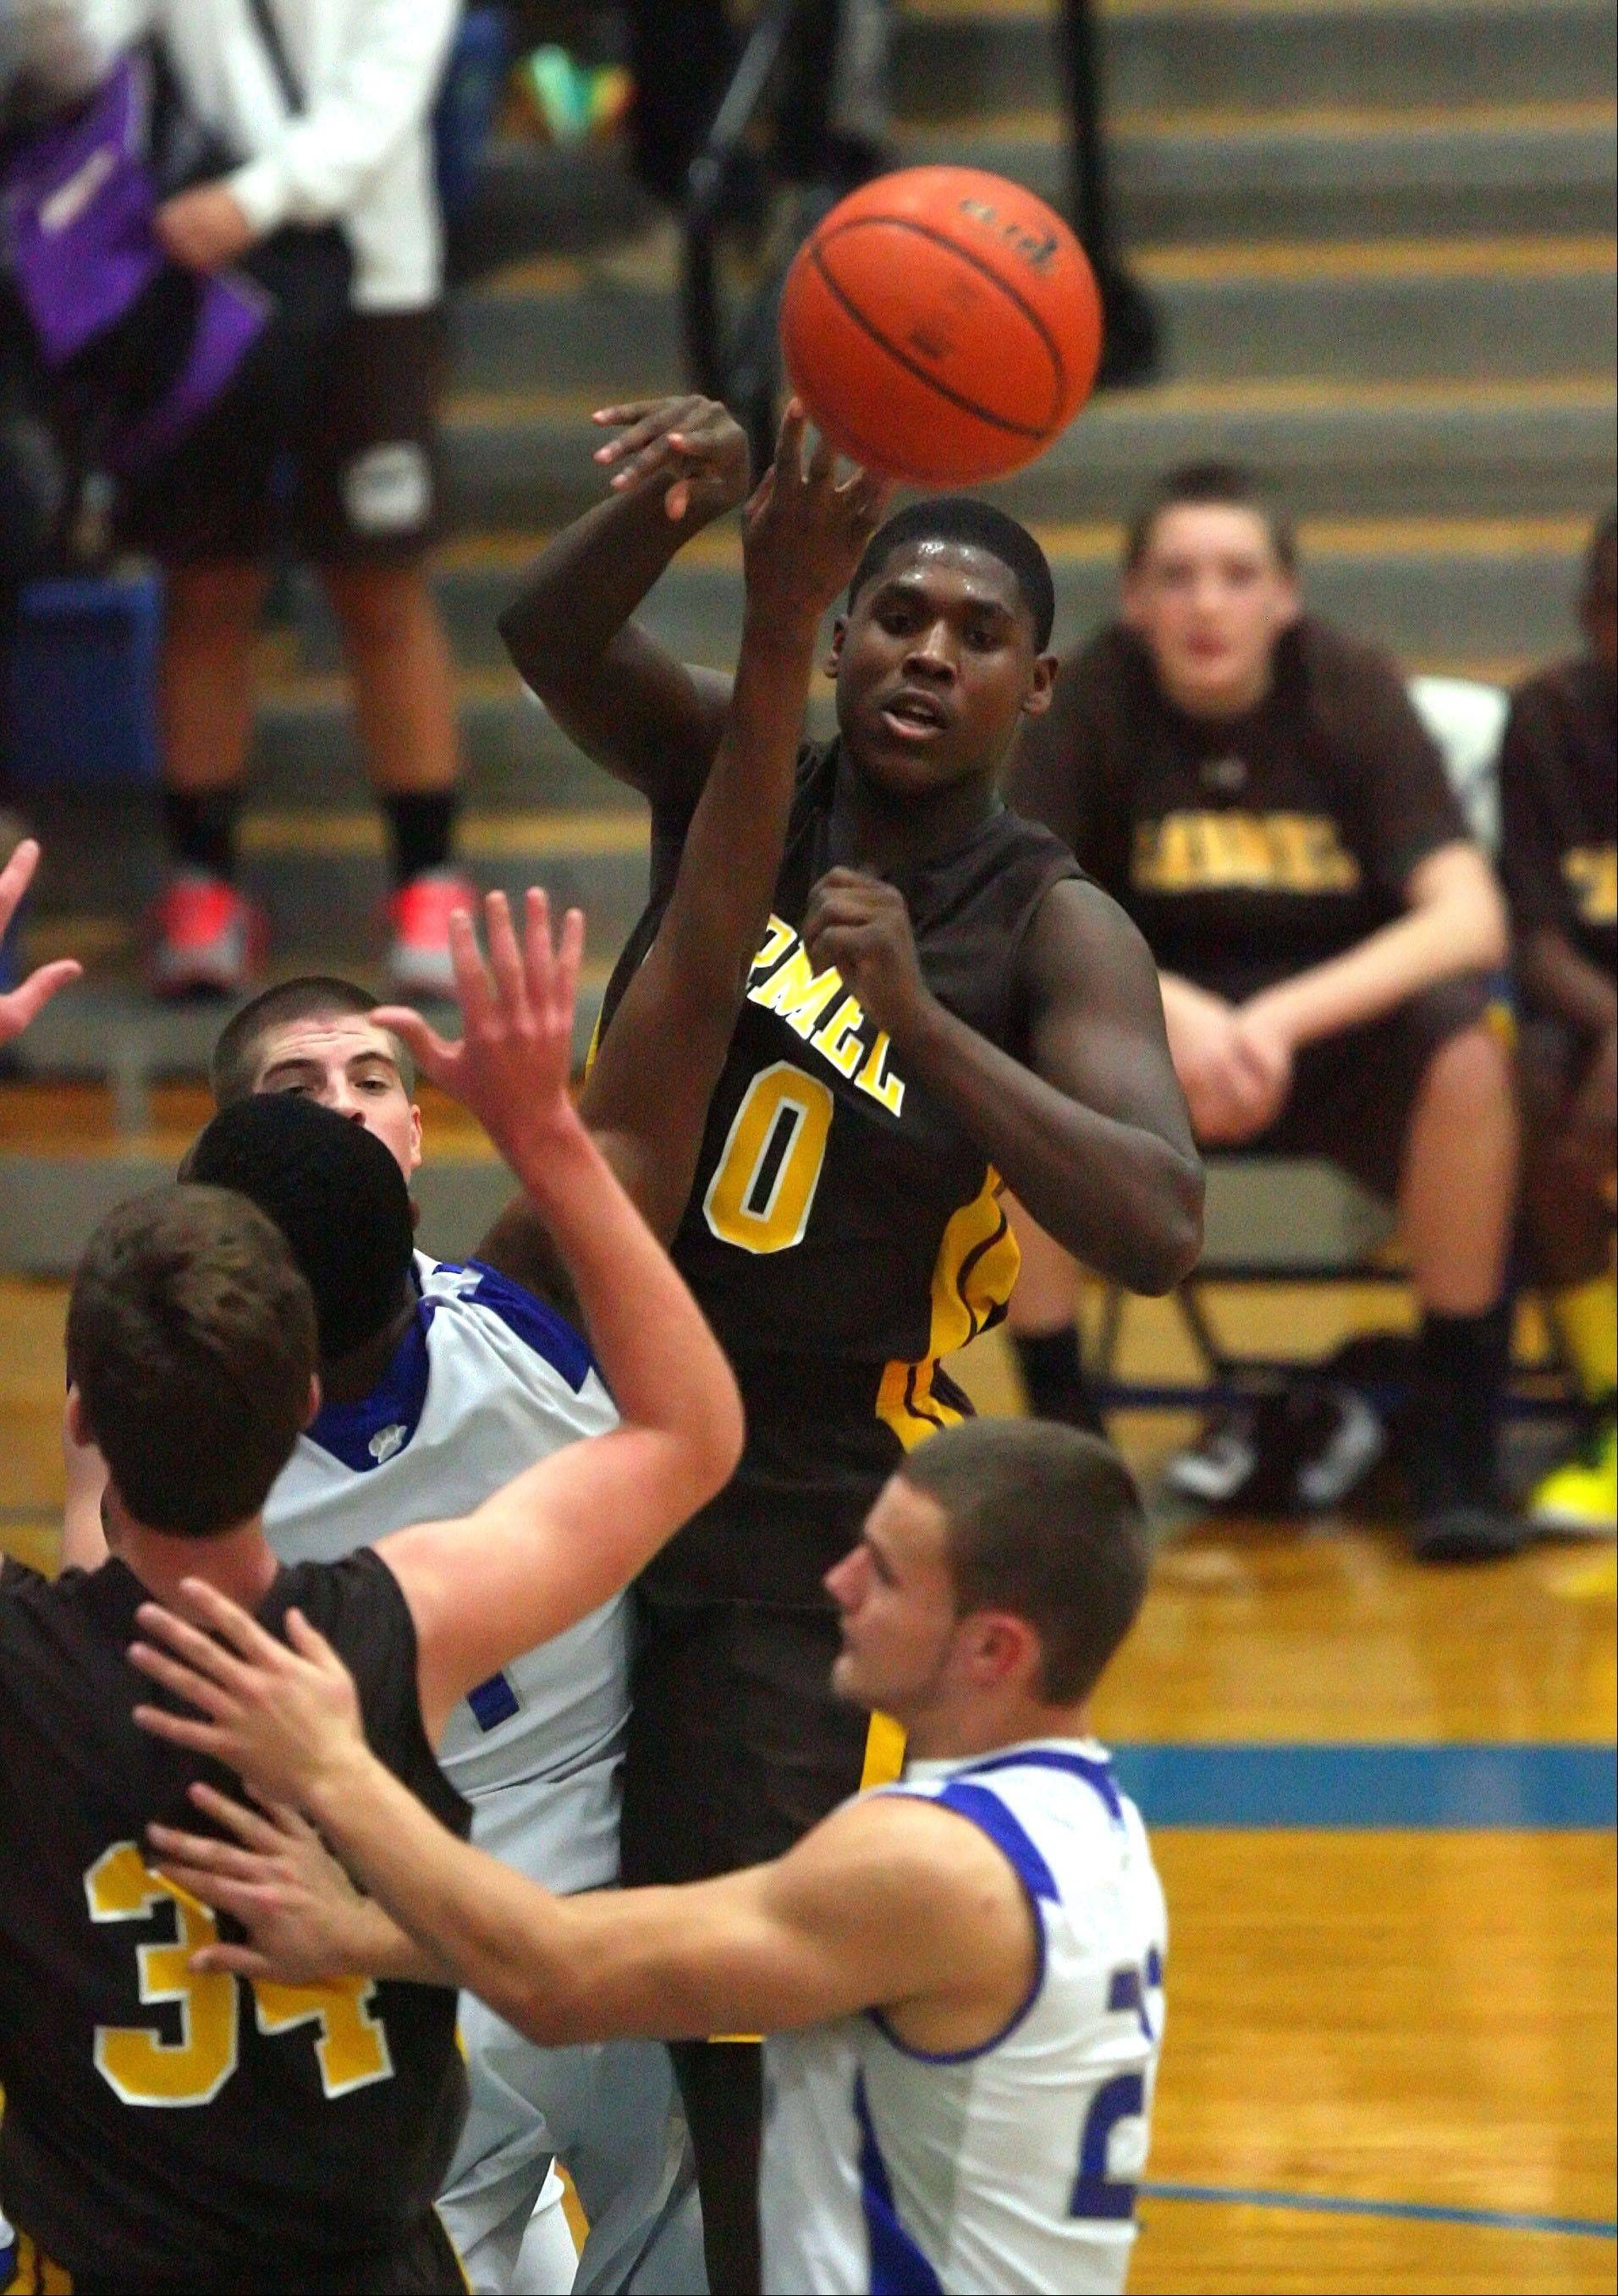 Images from the Carmel at Vernon Hills boys basketball game Wednesday, Nov. 28.